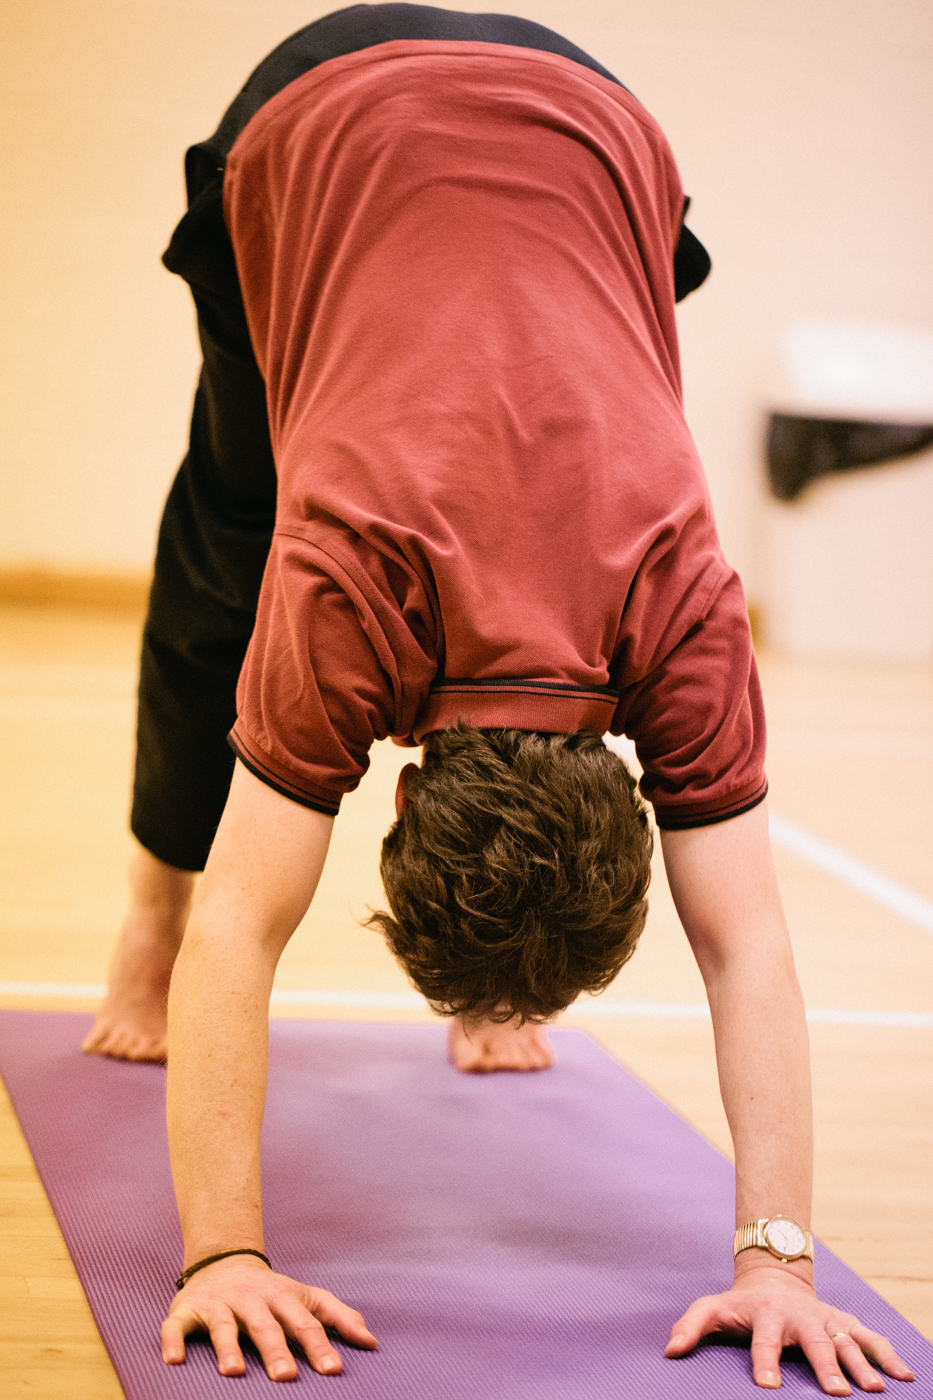 Yoga in the Workplace with Paul Beard